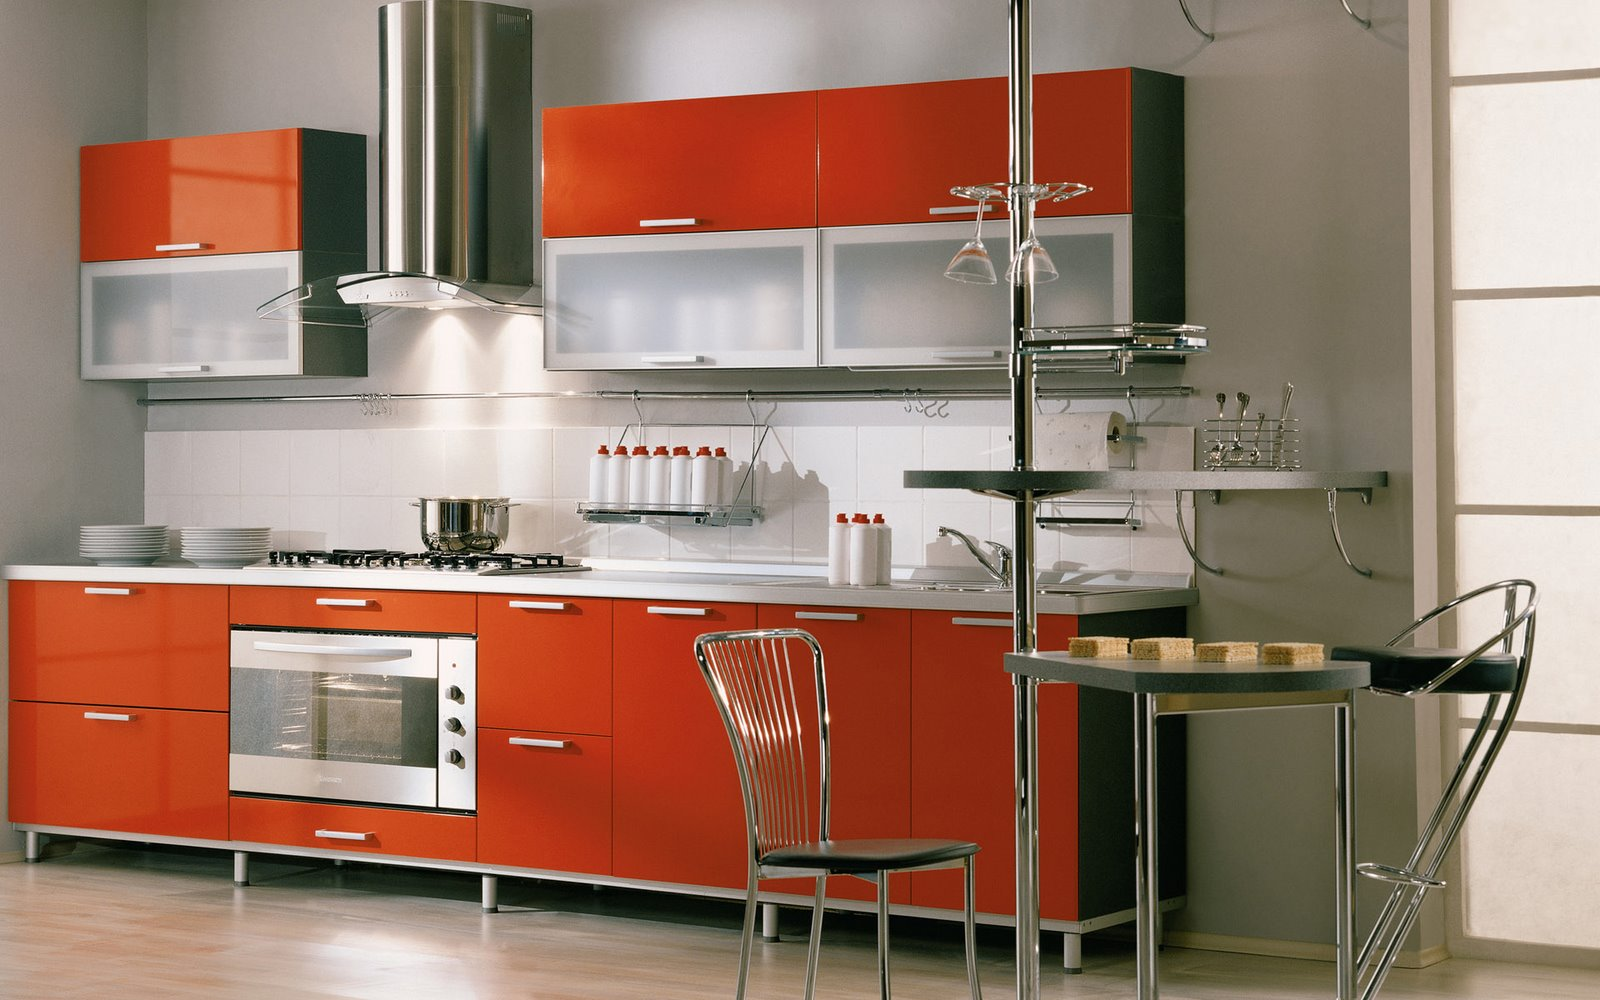 Kitchen cabinets organization ideas Photo - 1